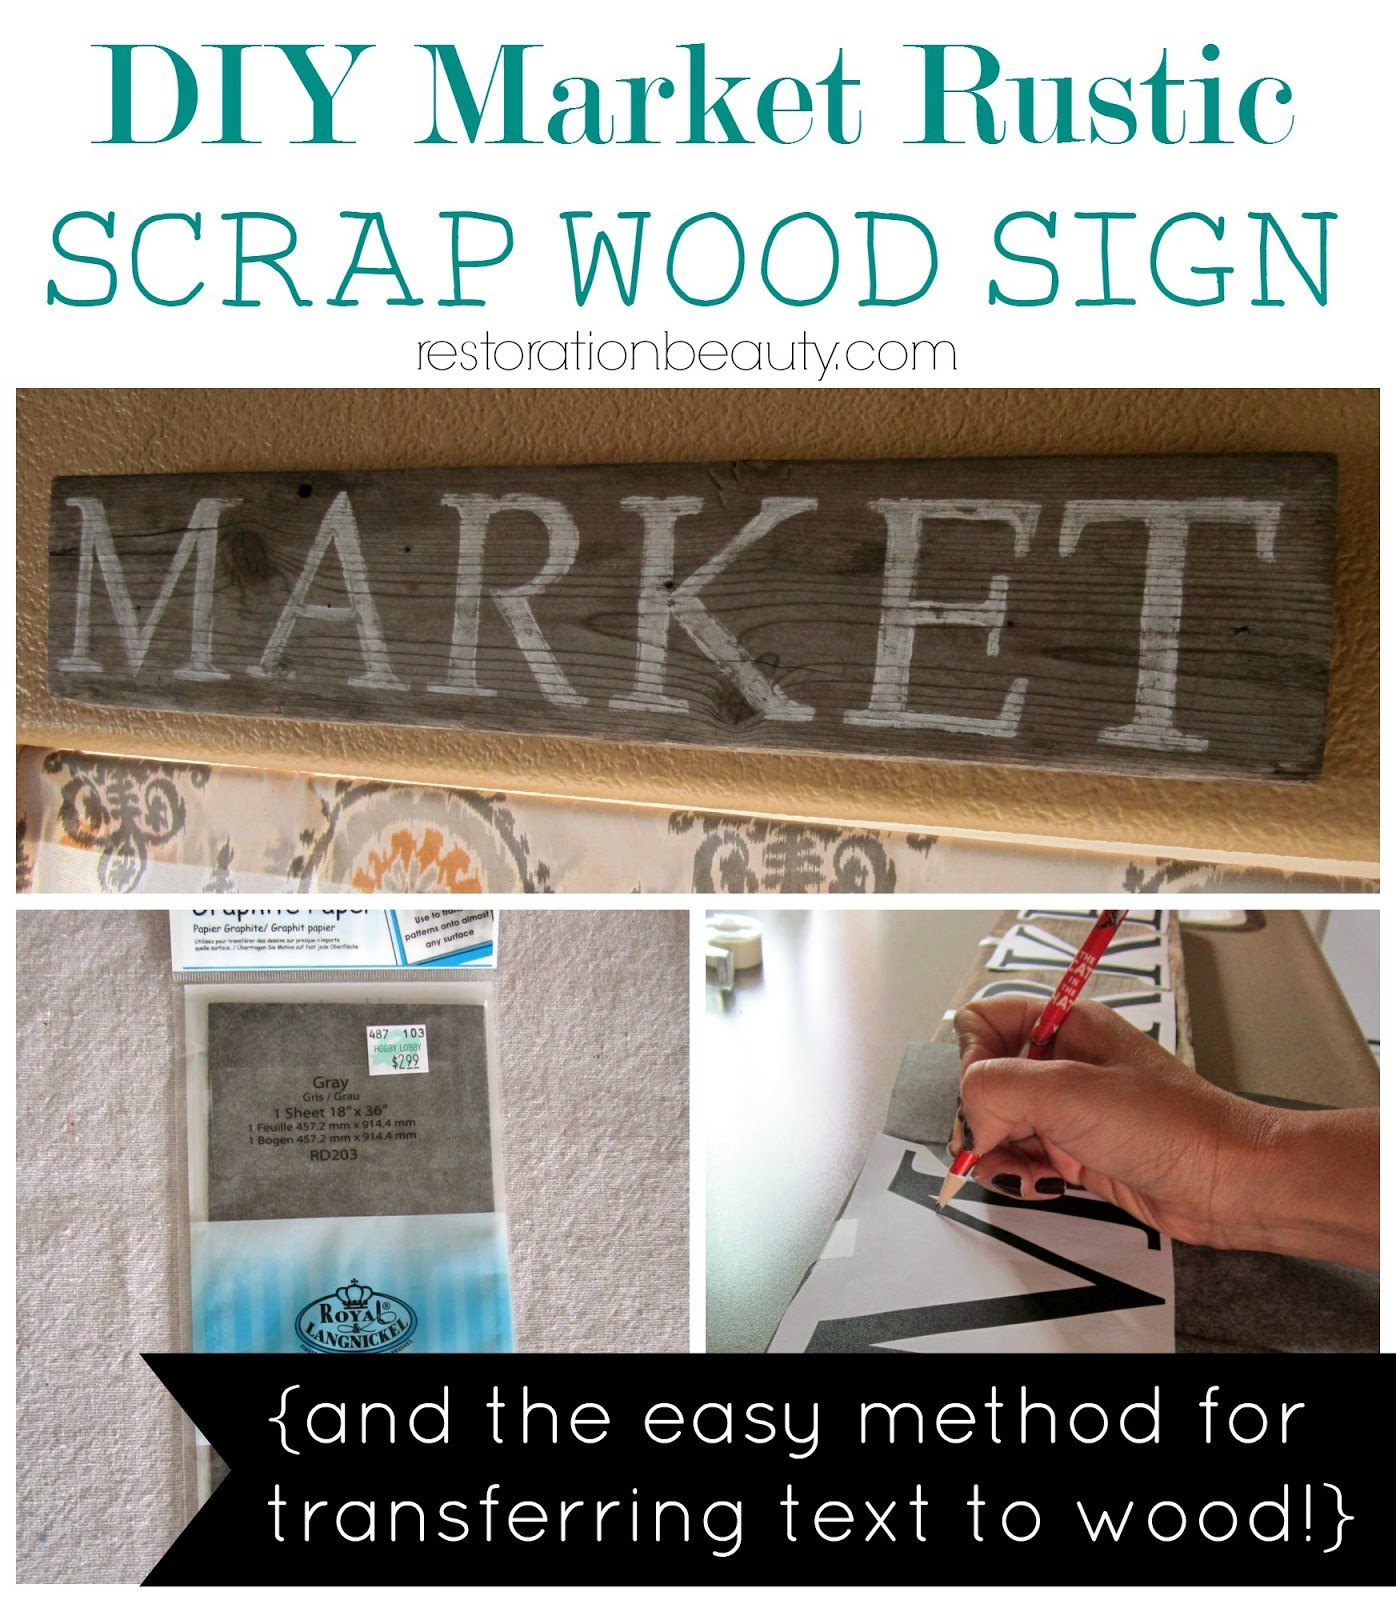 Wooden Signs For Kitchen Granite Countertop Restoration Beauty Diy Market Scrap Wood Sign And The